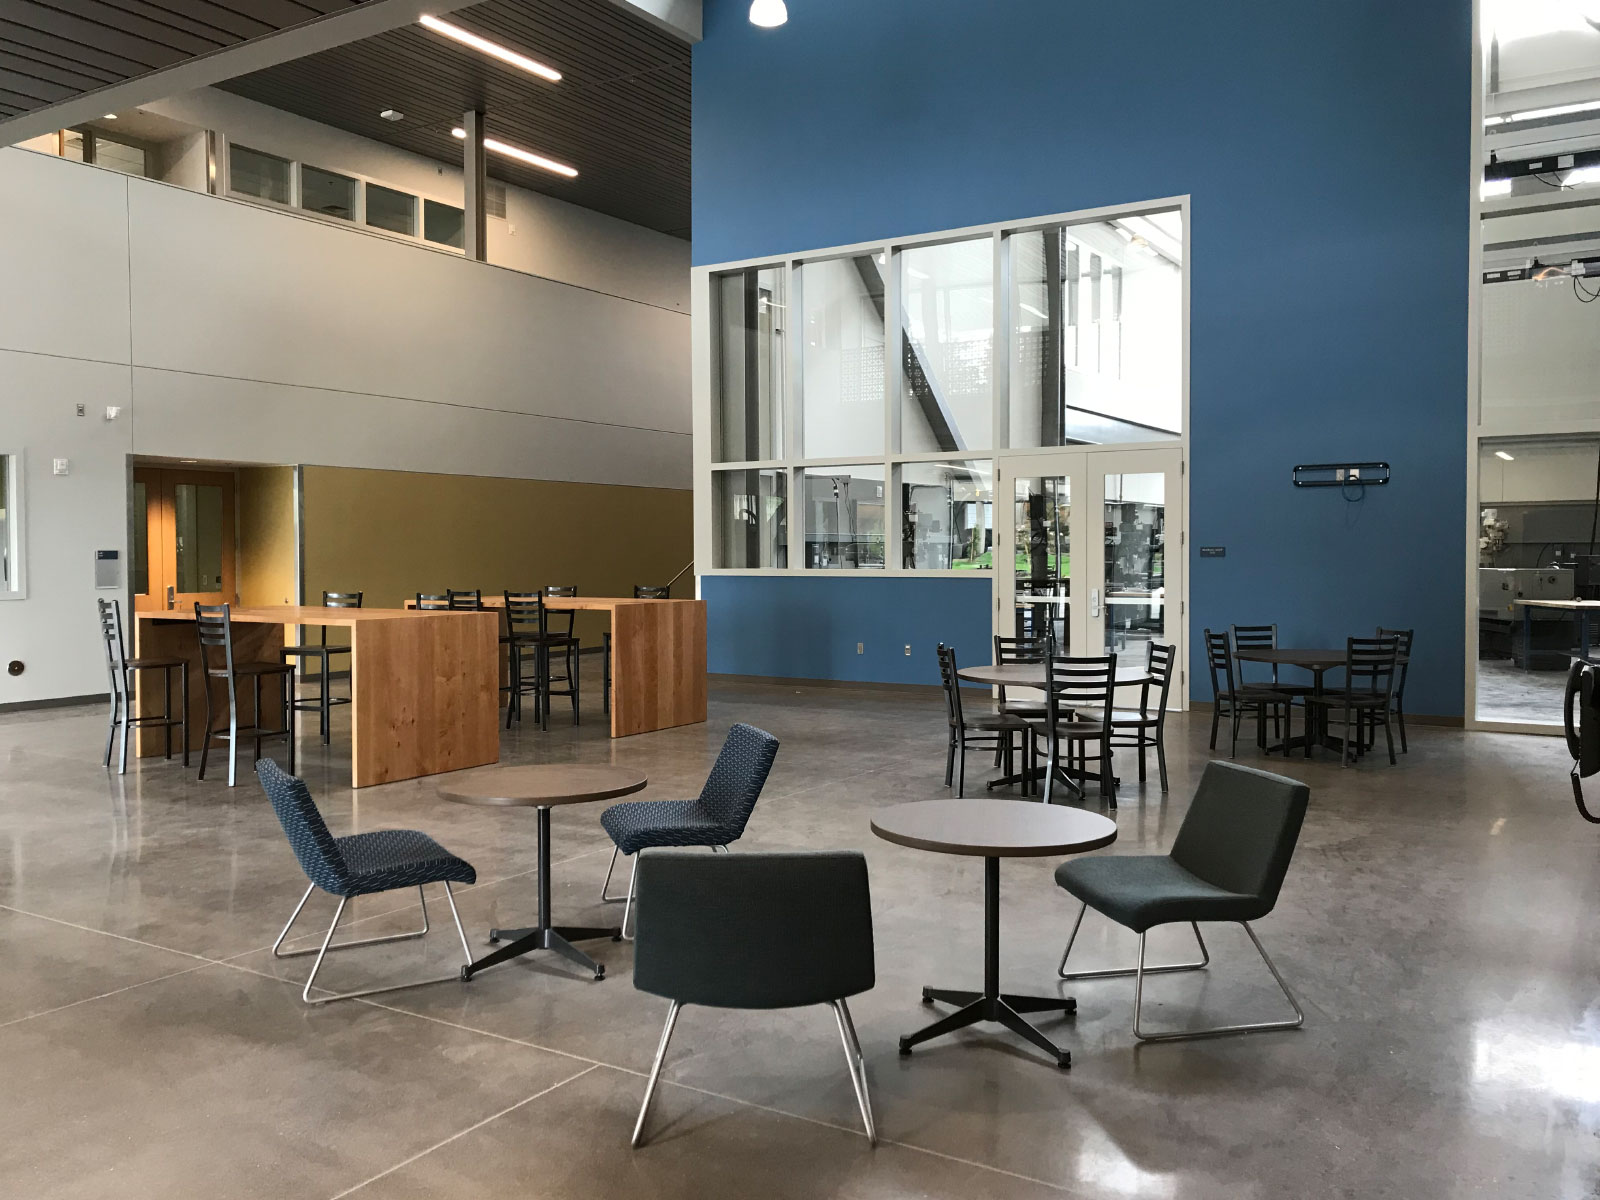 The Industrial Technology Center's lobby, with a vast space, seating and table areas, at the Oregon City campus